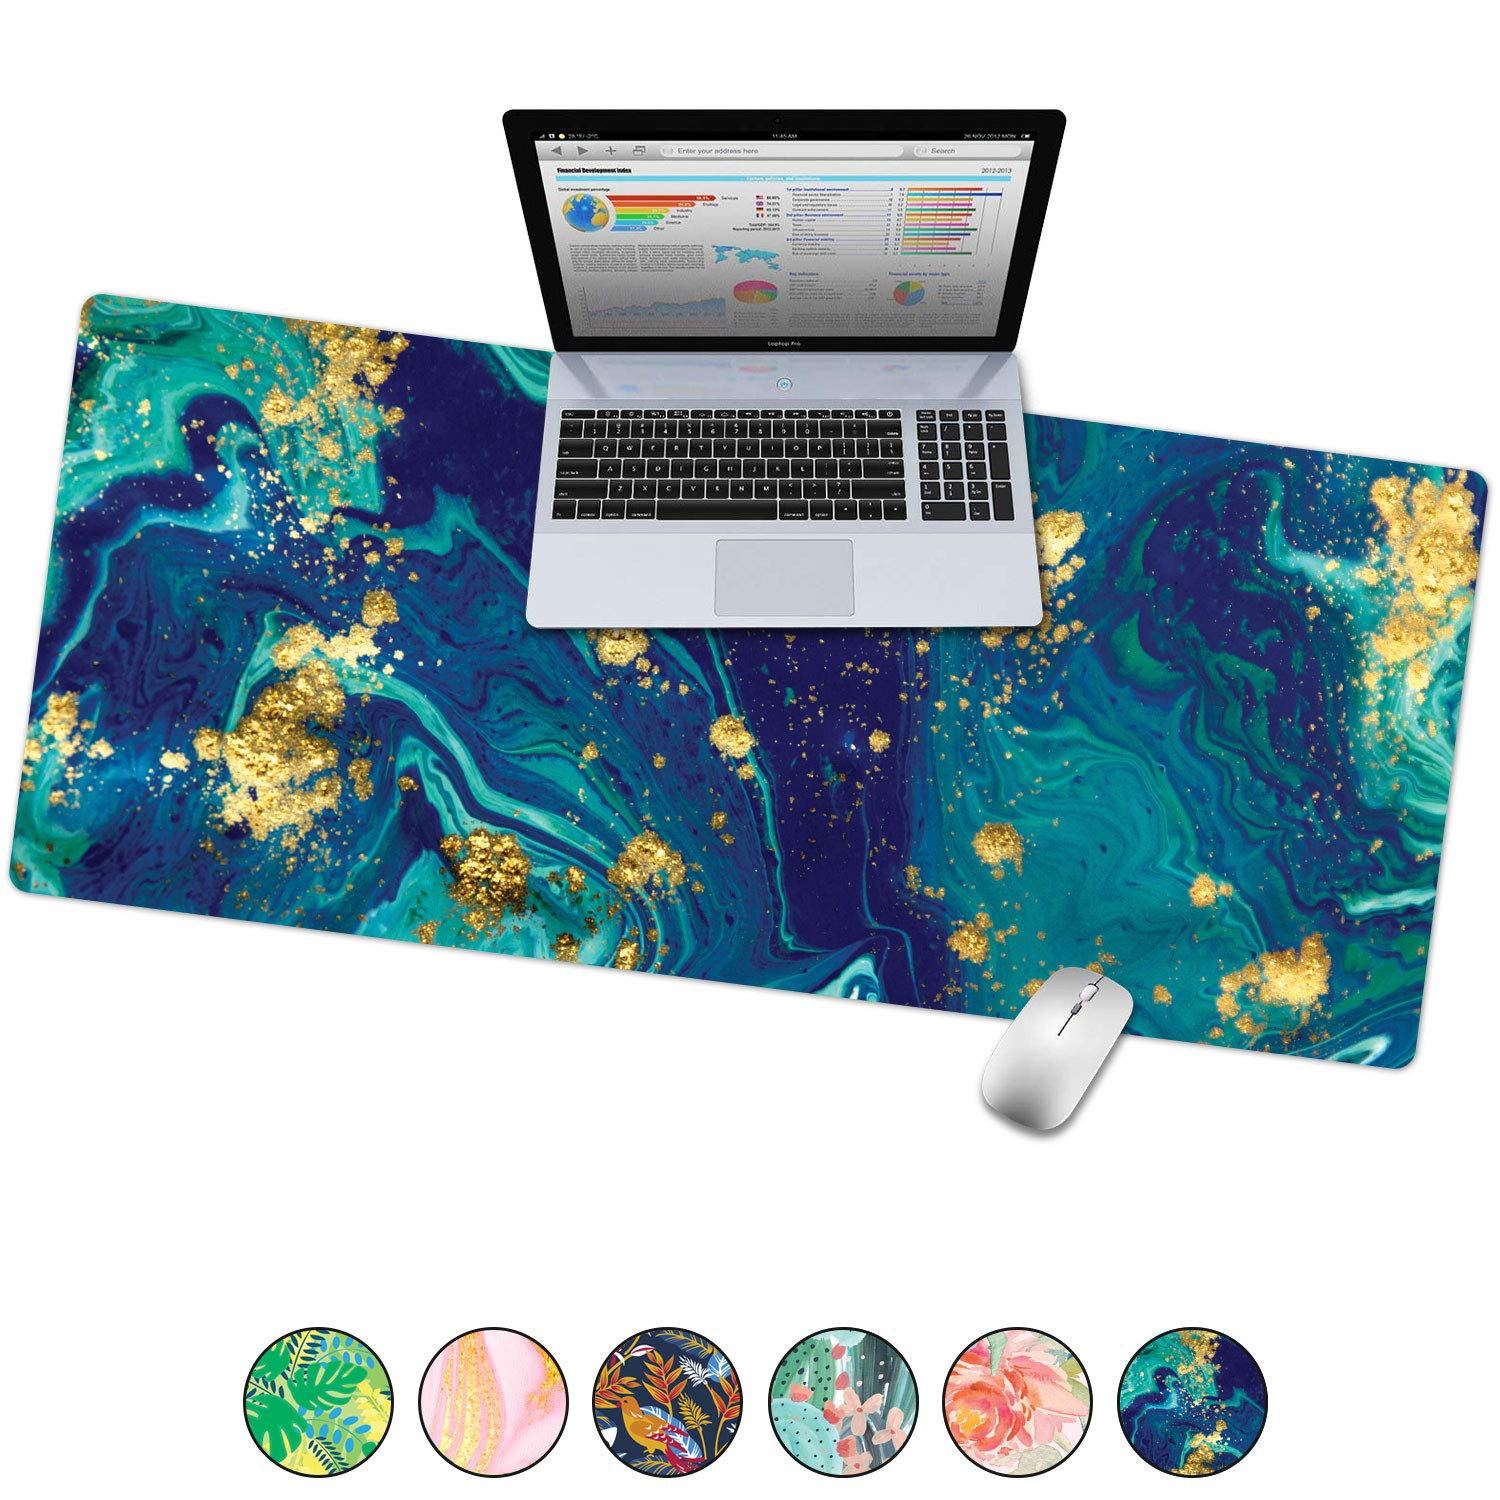 "French Koko Large Desk Mouse Pad Desktop Mat, Home Office School Cute Decor Extended Laptop Big Writing Blotter Protector Computer Accessories Pretty Mousepad Women 31""x15"" (Teal & Gold Marble-lous)"